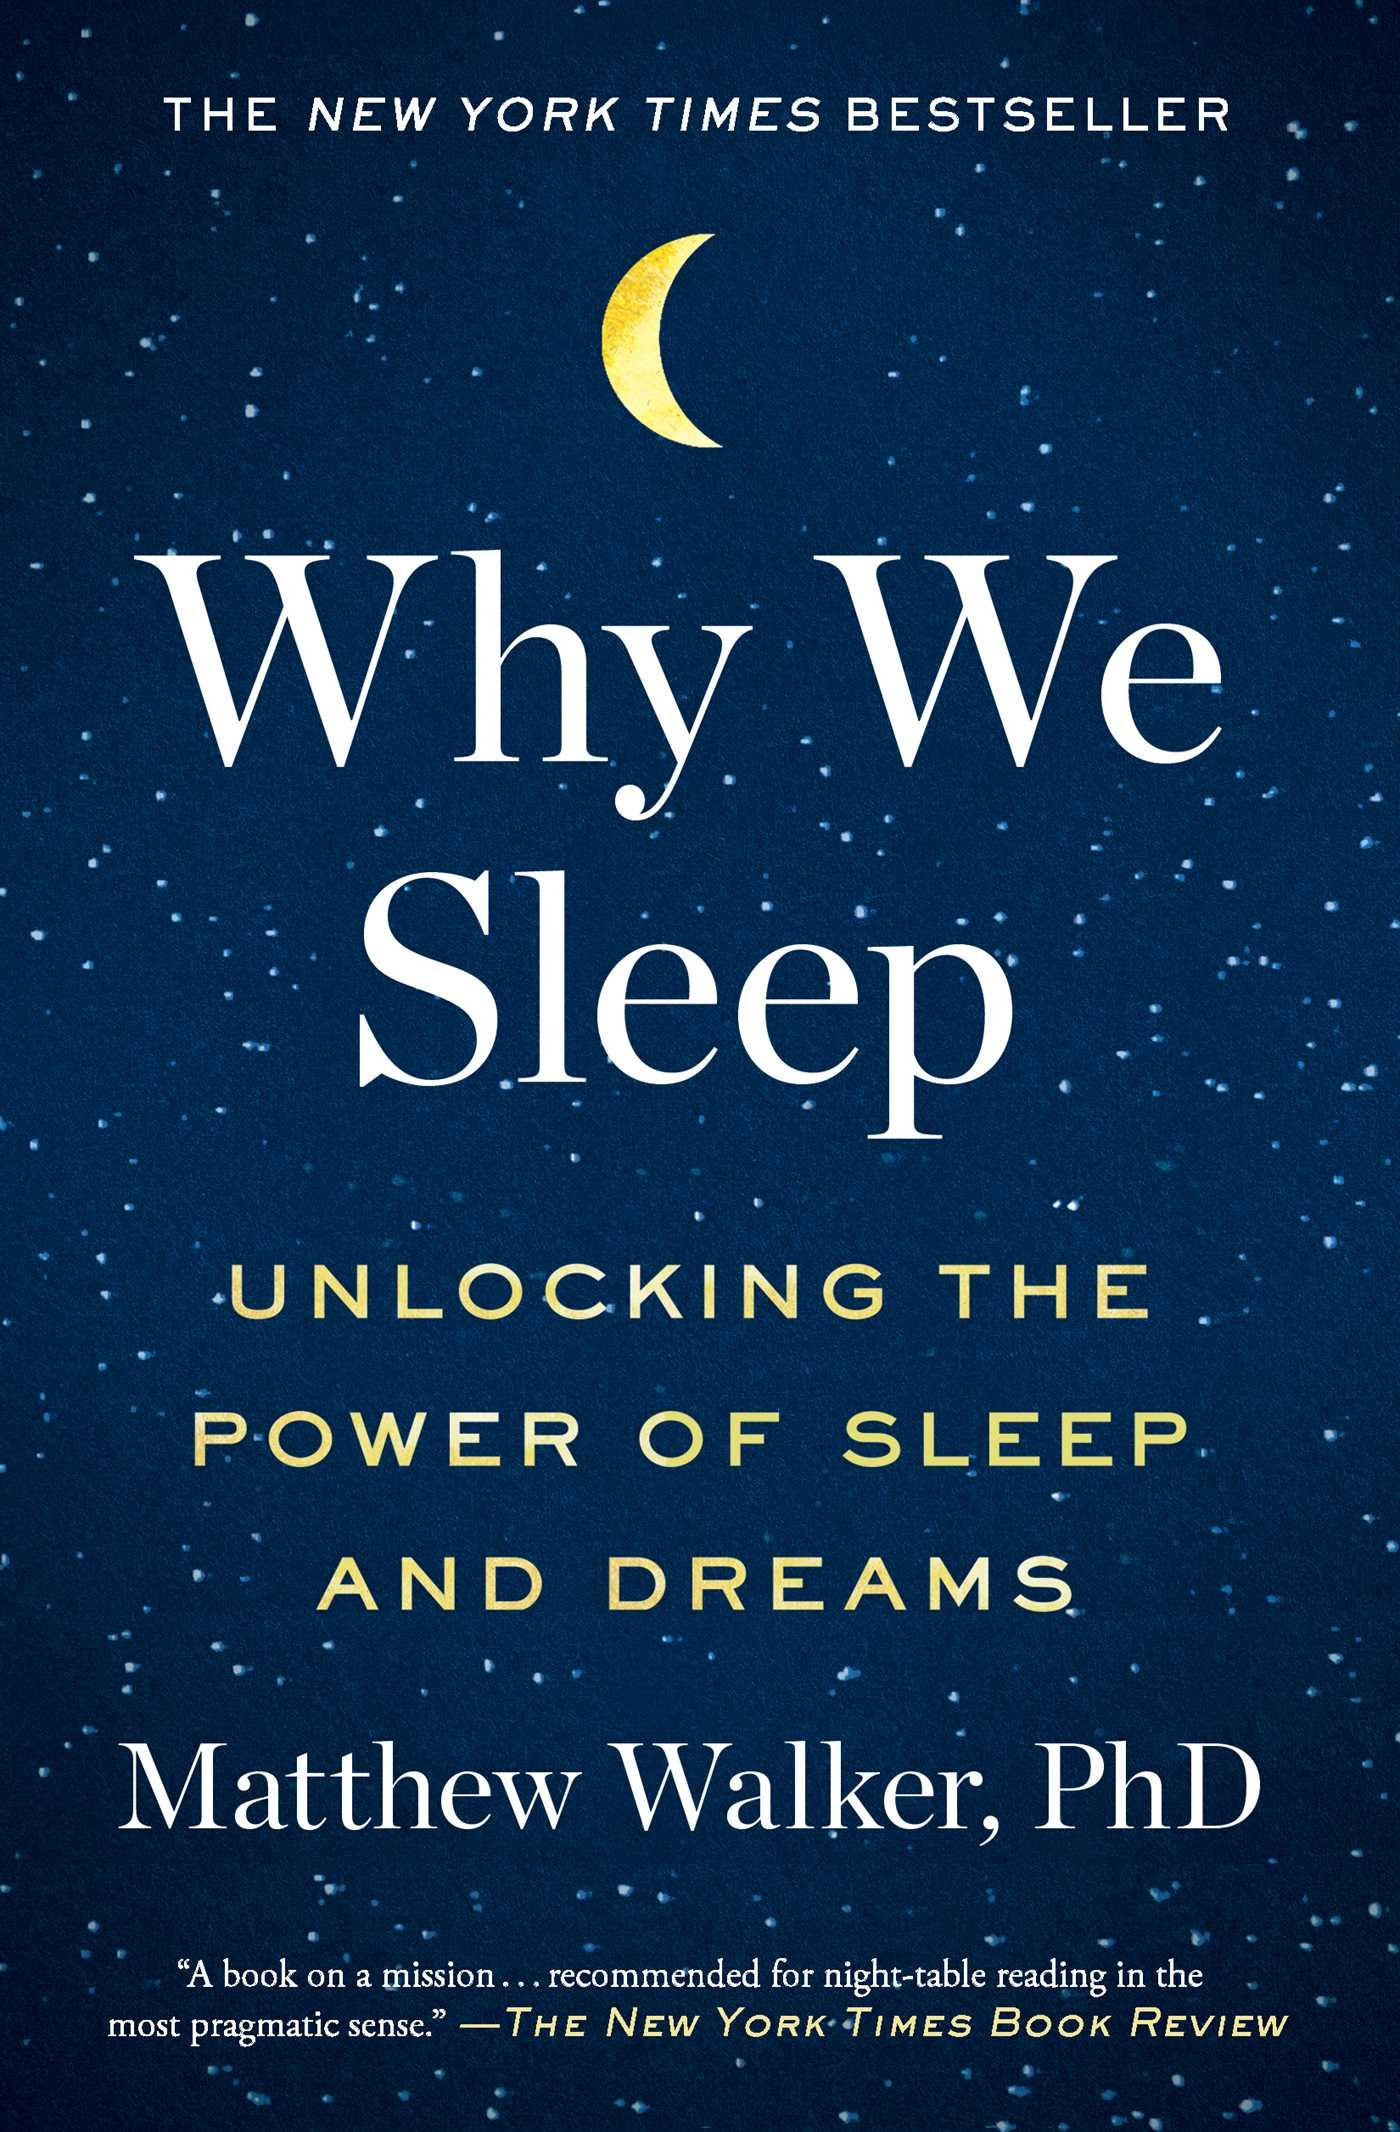 """Why We Sleep: Unlocking the Power of Sleep and Dreams - by Matthew Walker PhDA New York Times bestseller and international sensation, this """"stimulating and important book"""" (Financial Times) from the director of UC Berkeley's Center for Human Sleep Science is a fascinating dive into the purpose and power of slumber. As the Guardian said, Walker explains """"how a good night's shut-eye can make us cleverer, more attractive, slimmer, happier, healthier, and ward off cancer.""""With two appearances on CBS This Morning and Fresh Air's most popular interview of 2017, Matthew Walker has made abundantly clear that sleep is one of the most important but least understood aspects of our life. Until very recently, science had no answer to the question of why we sleep, or what good it served, or why we suffer such devastating health consequences when it is absent.Charting the most cutting-edge scientific breakthroughs, and marshalling his decades of research and clinical practice, Walker explains how we can harness sleep to improve learning, mood and energy levels, regulate hormones, prevent cancer, Alzheimer's and diabetes, slow the effects of aging, and increase longevity. He also provides actionable steps towards getting a better night's sleep every night."""